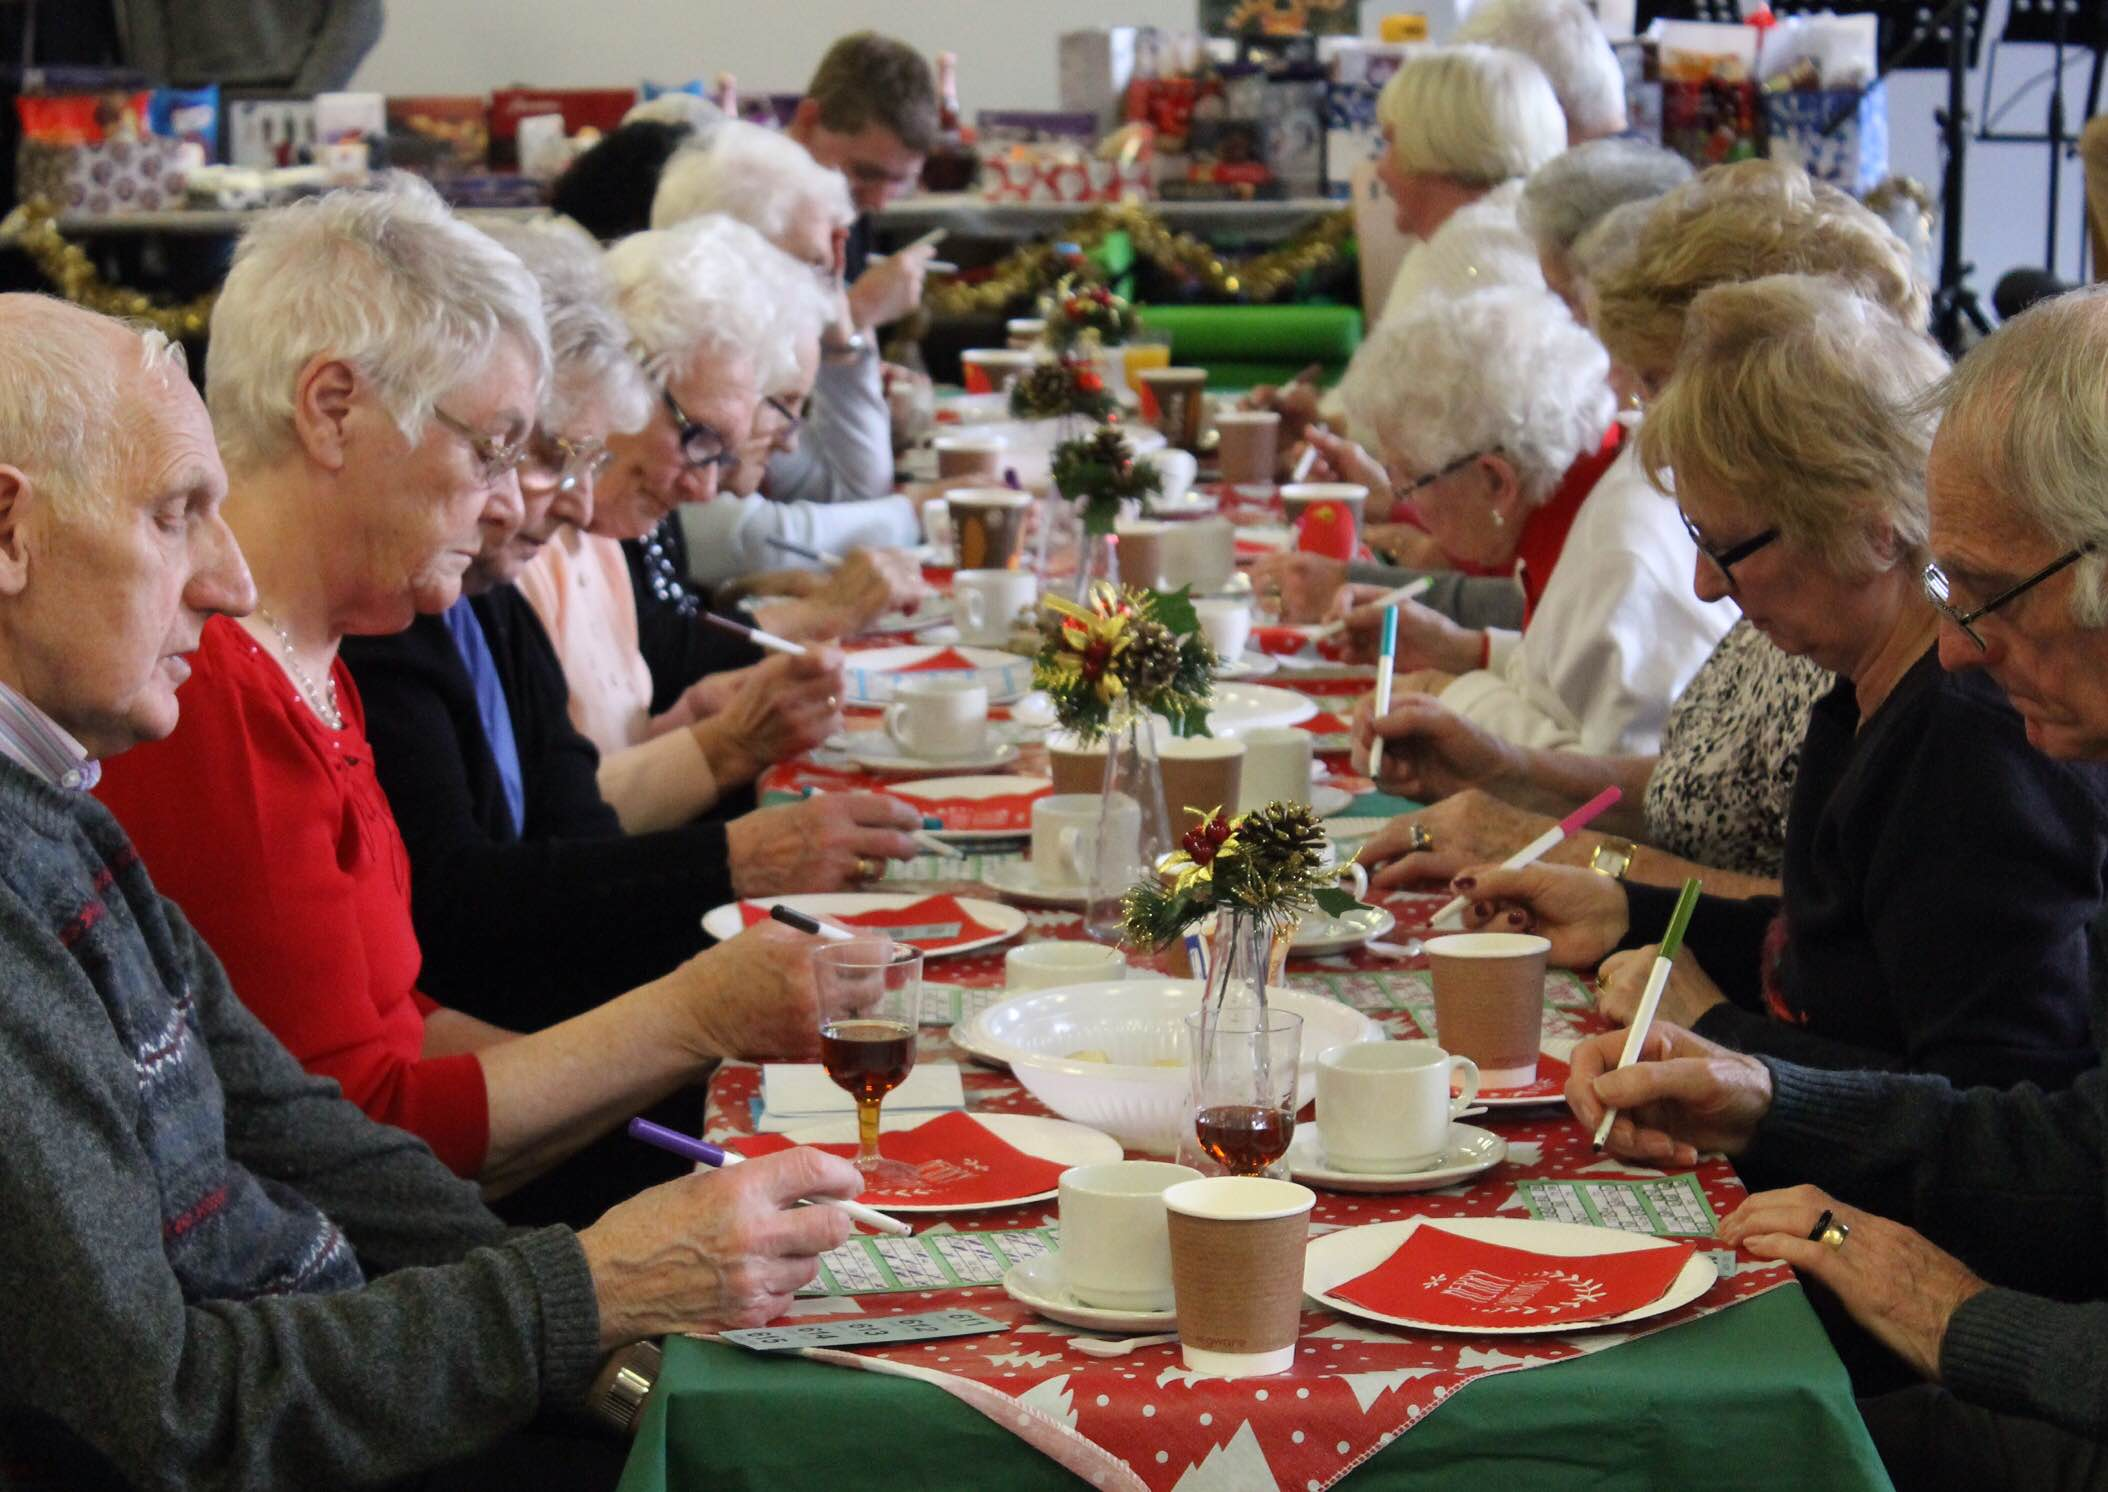 Love this snap I took at our Christmas Party at work - they loved playing bingo!